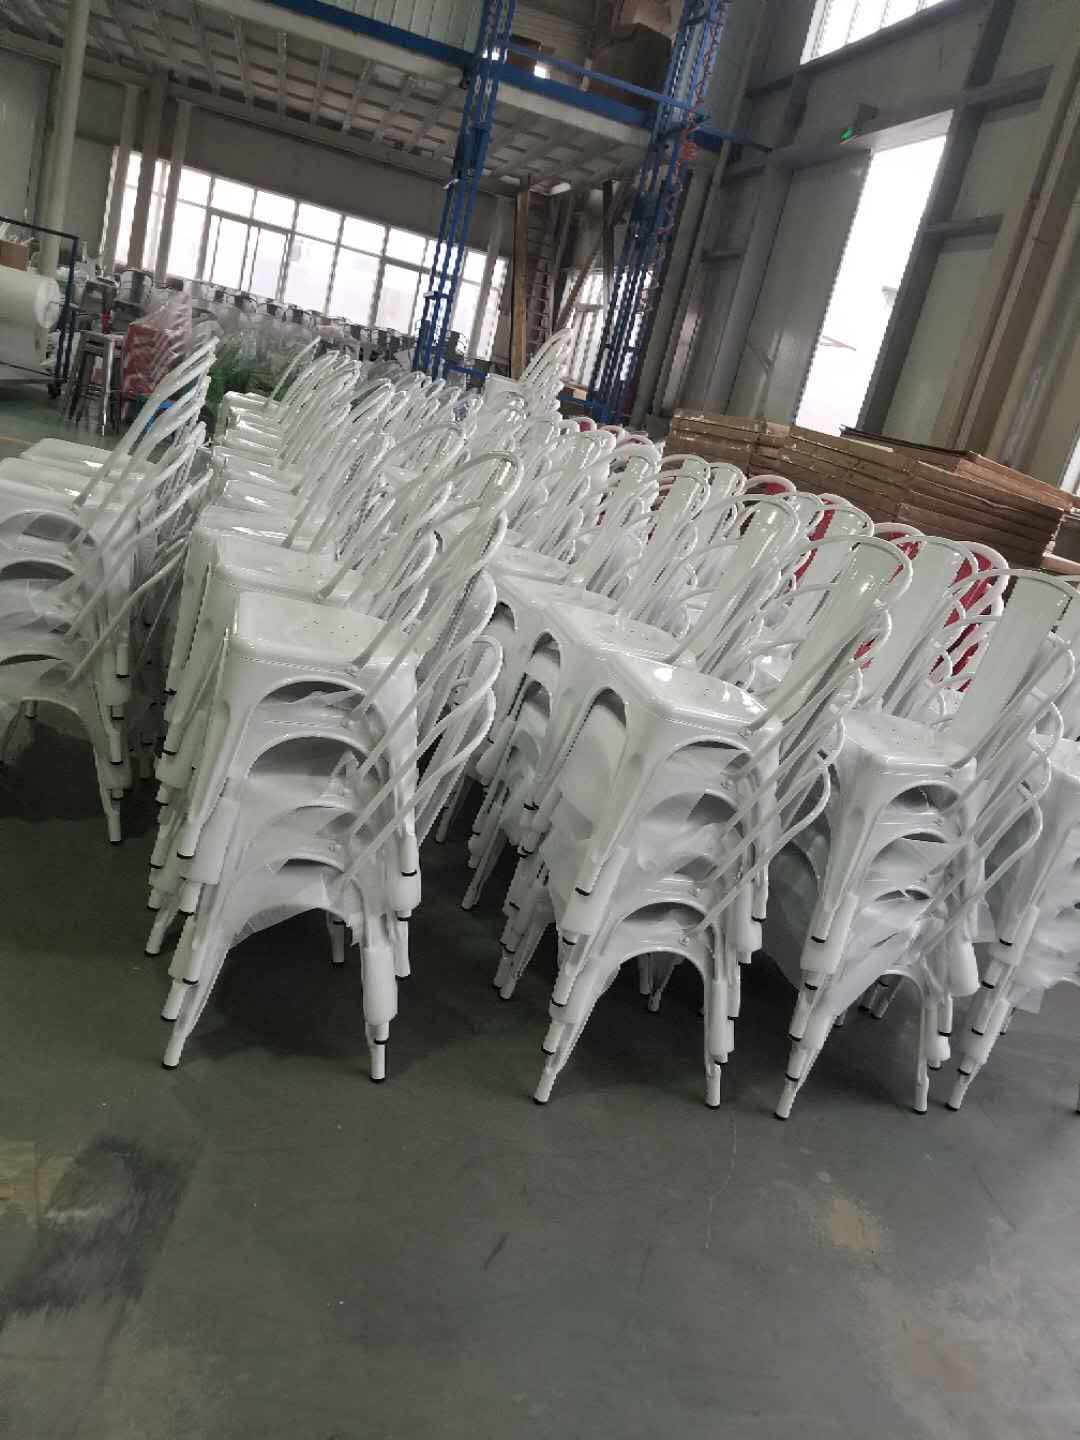 4pcs stackable metal chairs